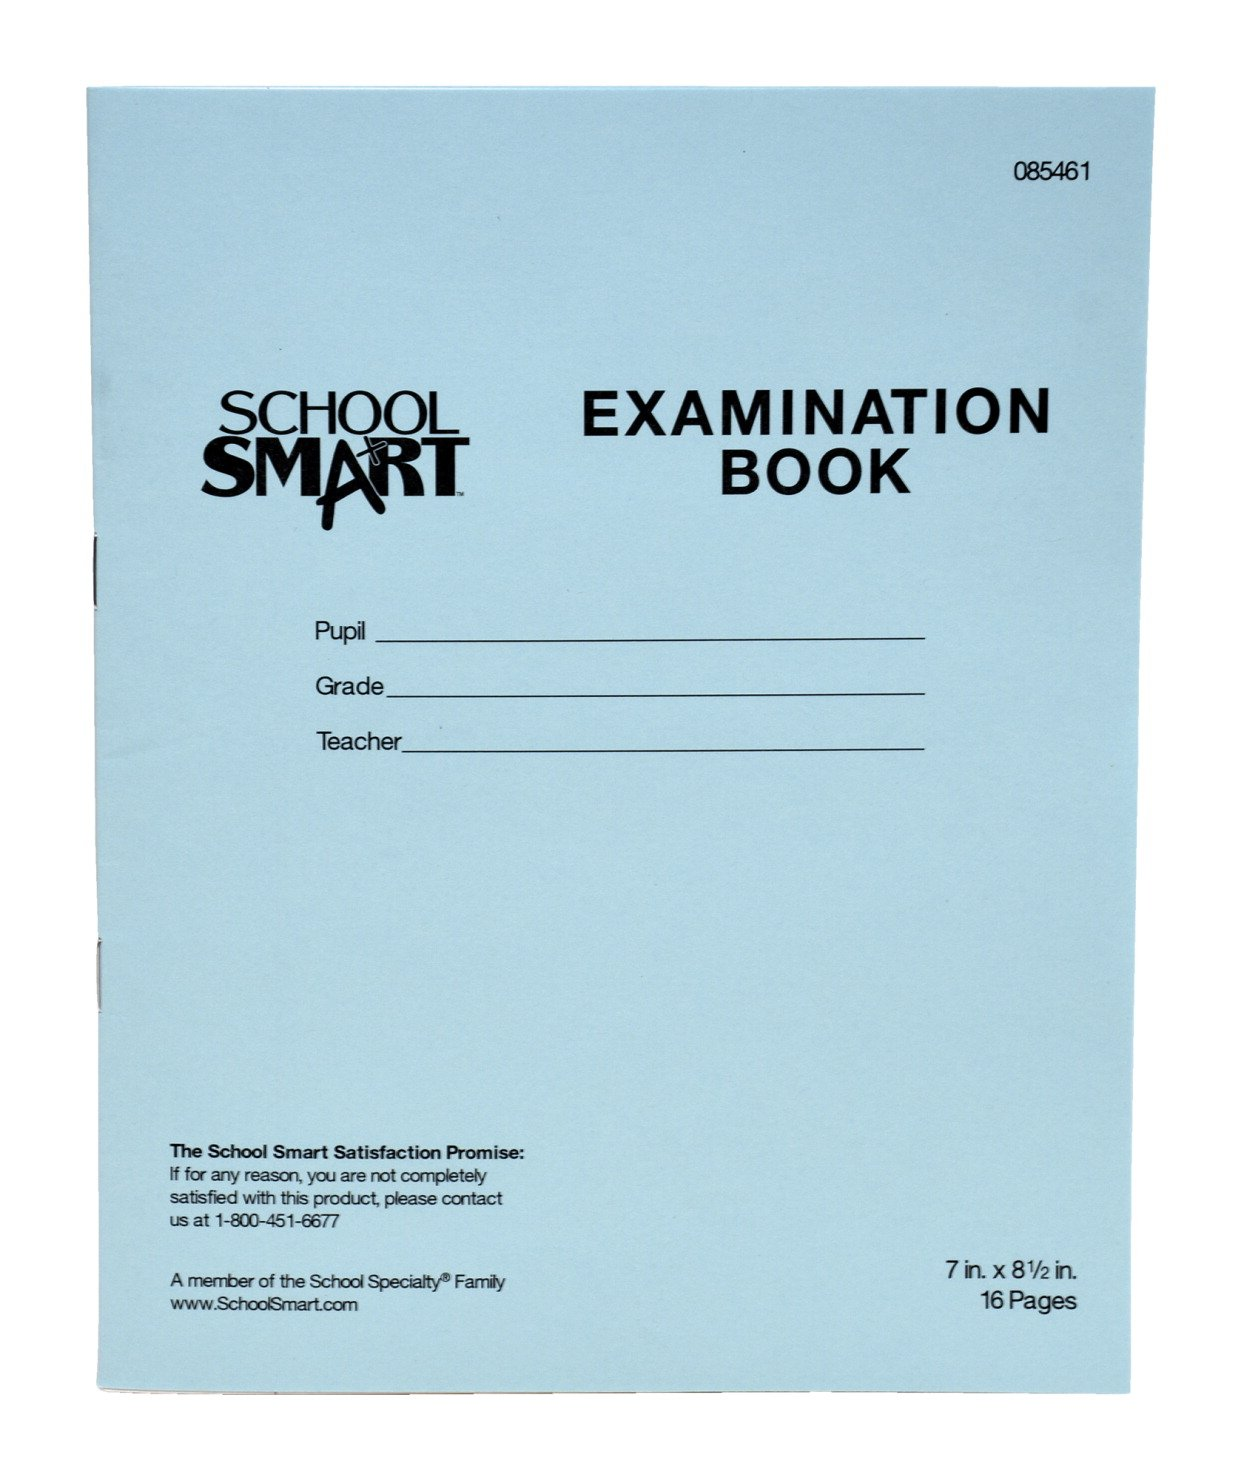 School Smart Ruled Examination Blue Books with Margin - 7 in x 8 1/2 in - Pack of 50, 16 Page Books